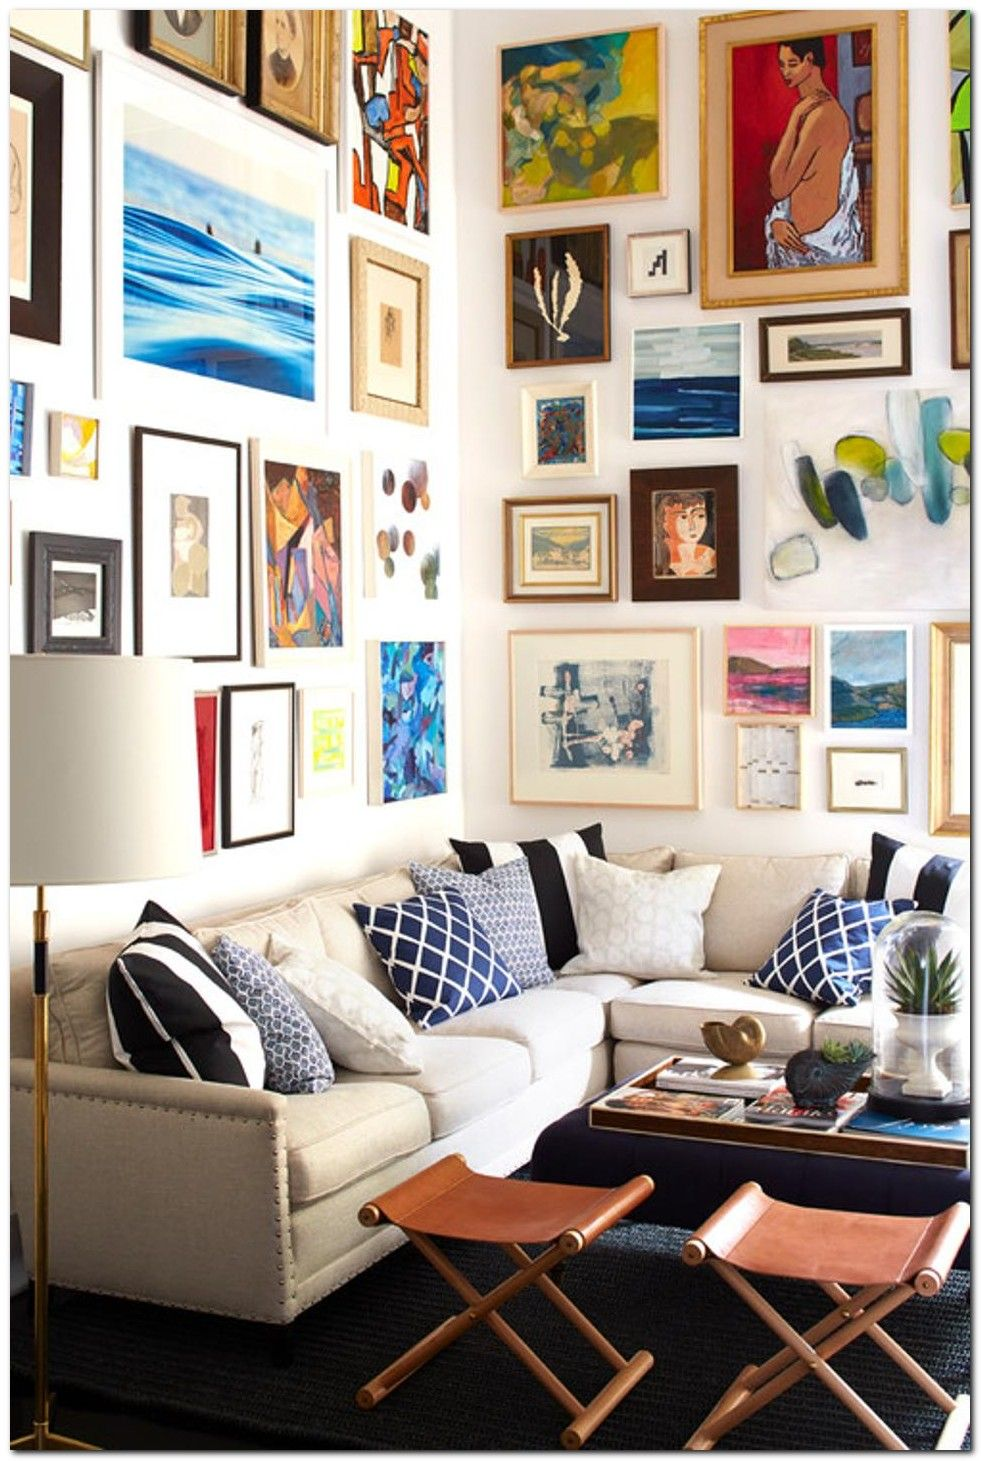 100 Smart Ideas To Add More Seating To Small House The Urban Interior Small Living Room Layout Small Living Room Design Small Room Design